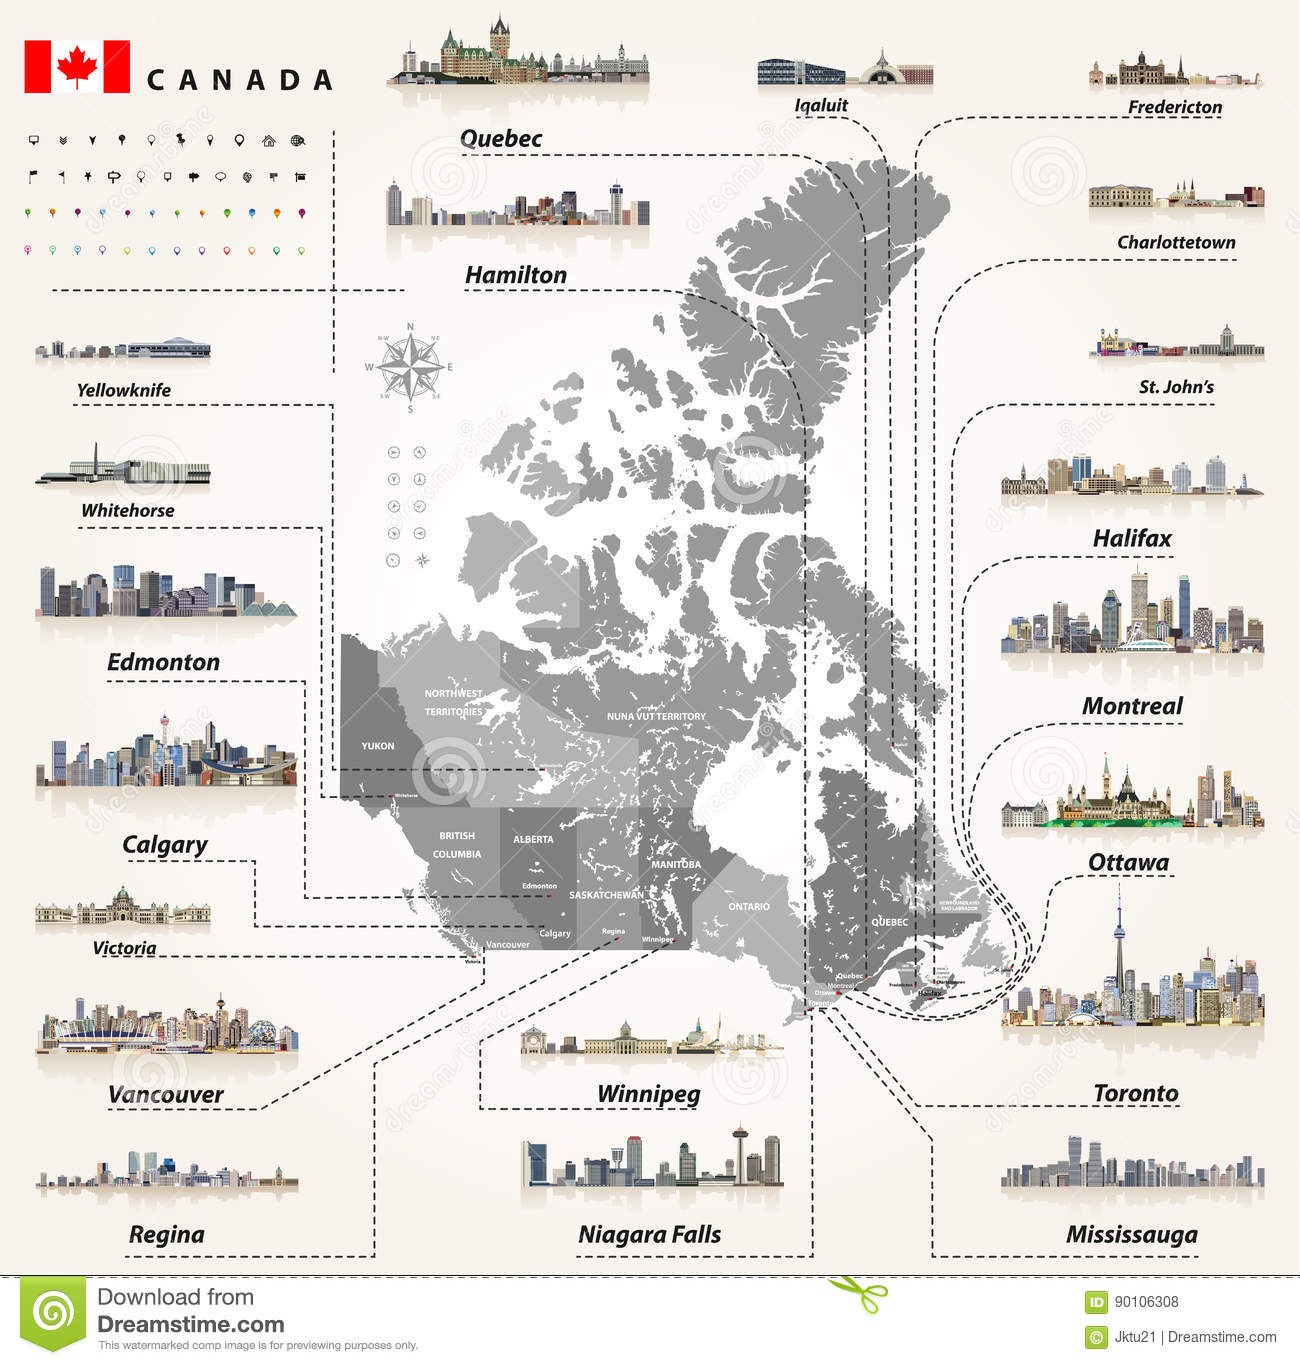 Map Of Provinces And Territories Of Canada With Largest Cities And